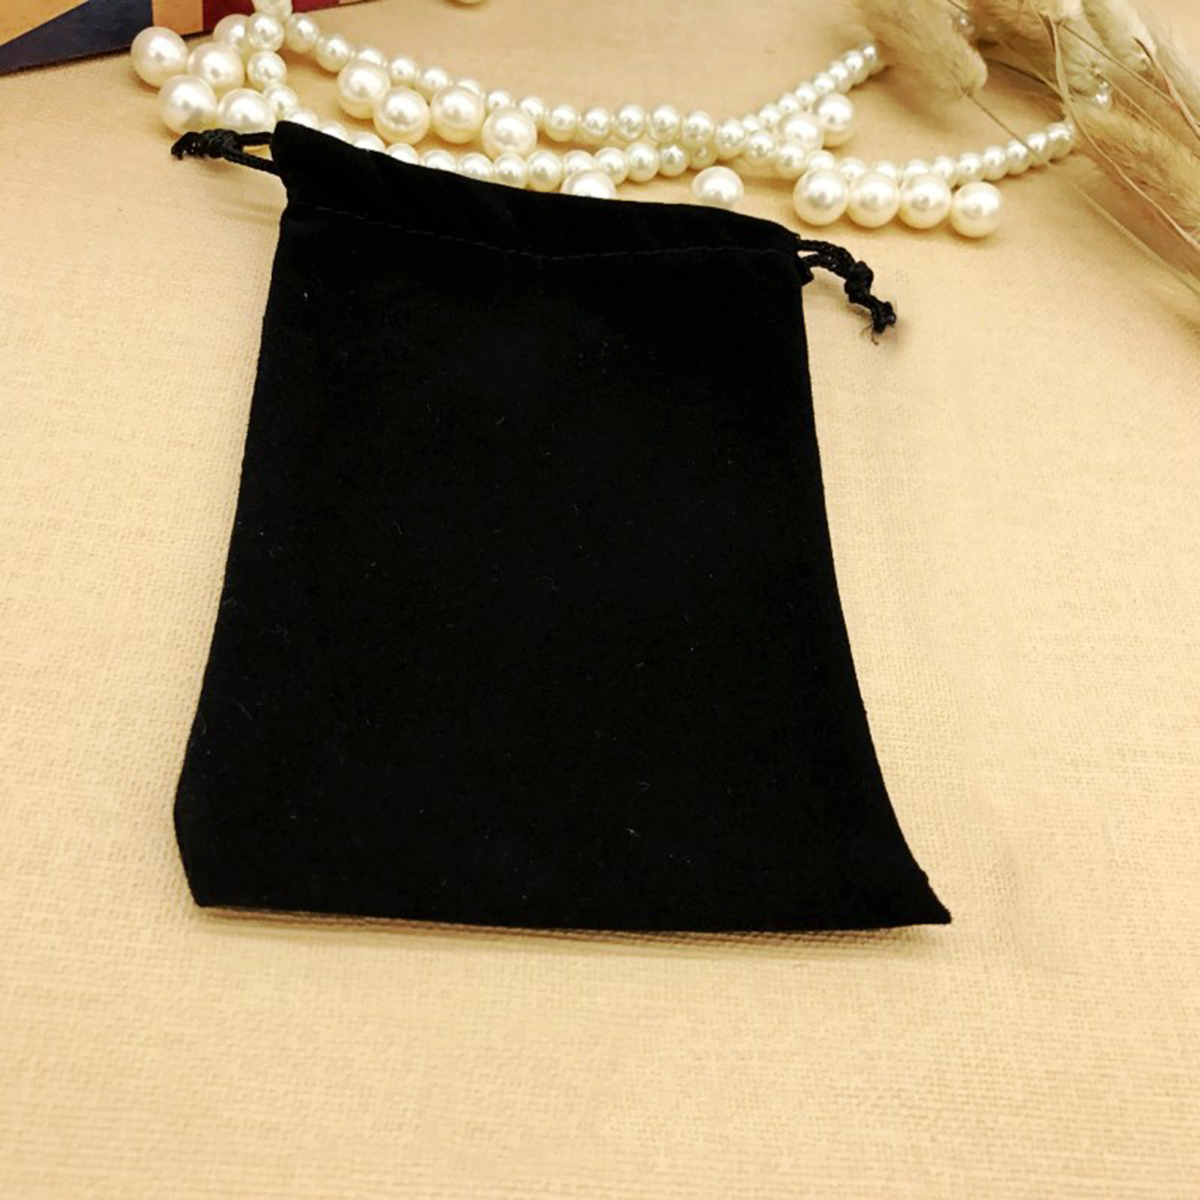 Multi-used Storage Bags Polyhedral Dices Black Velvet Jewelry Pouches for Electronic Gadgets Gaming Dice